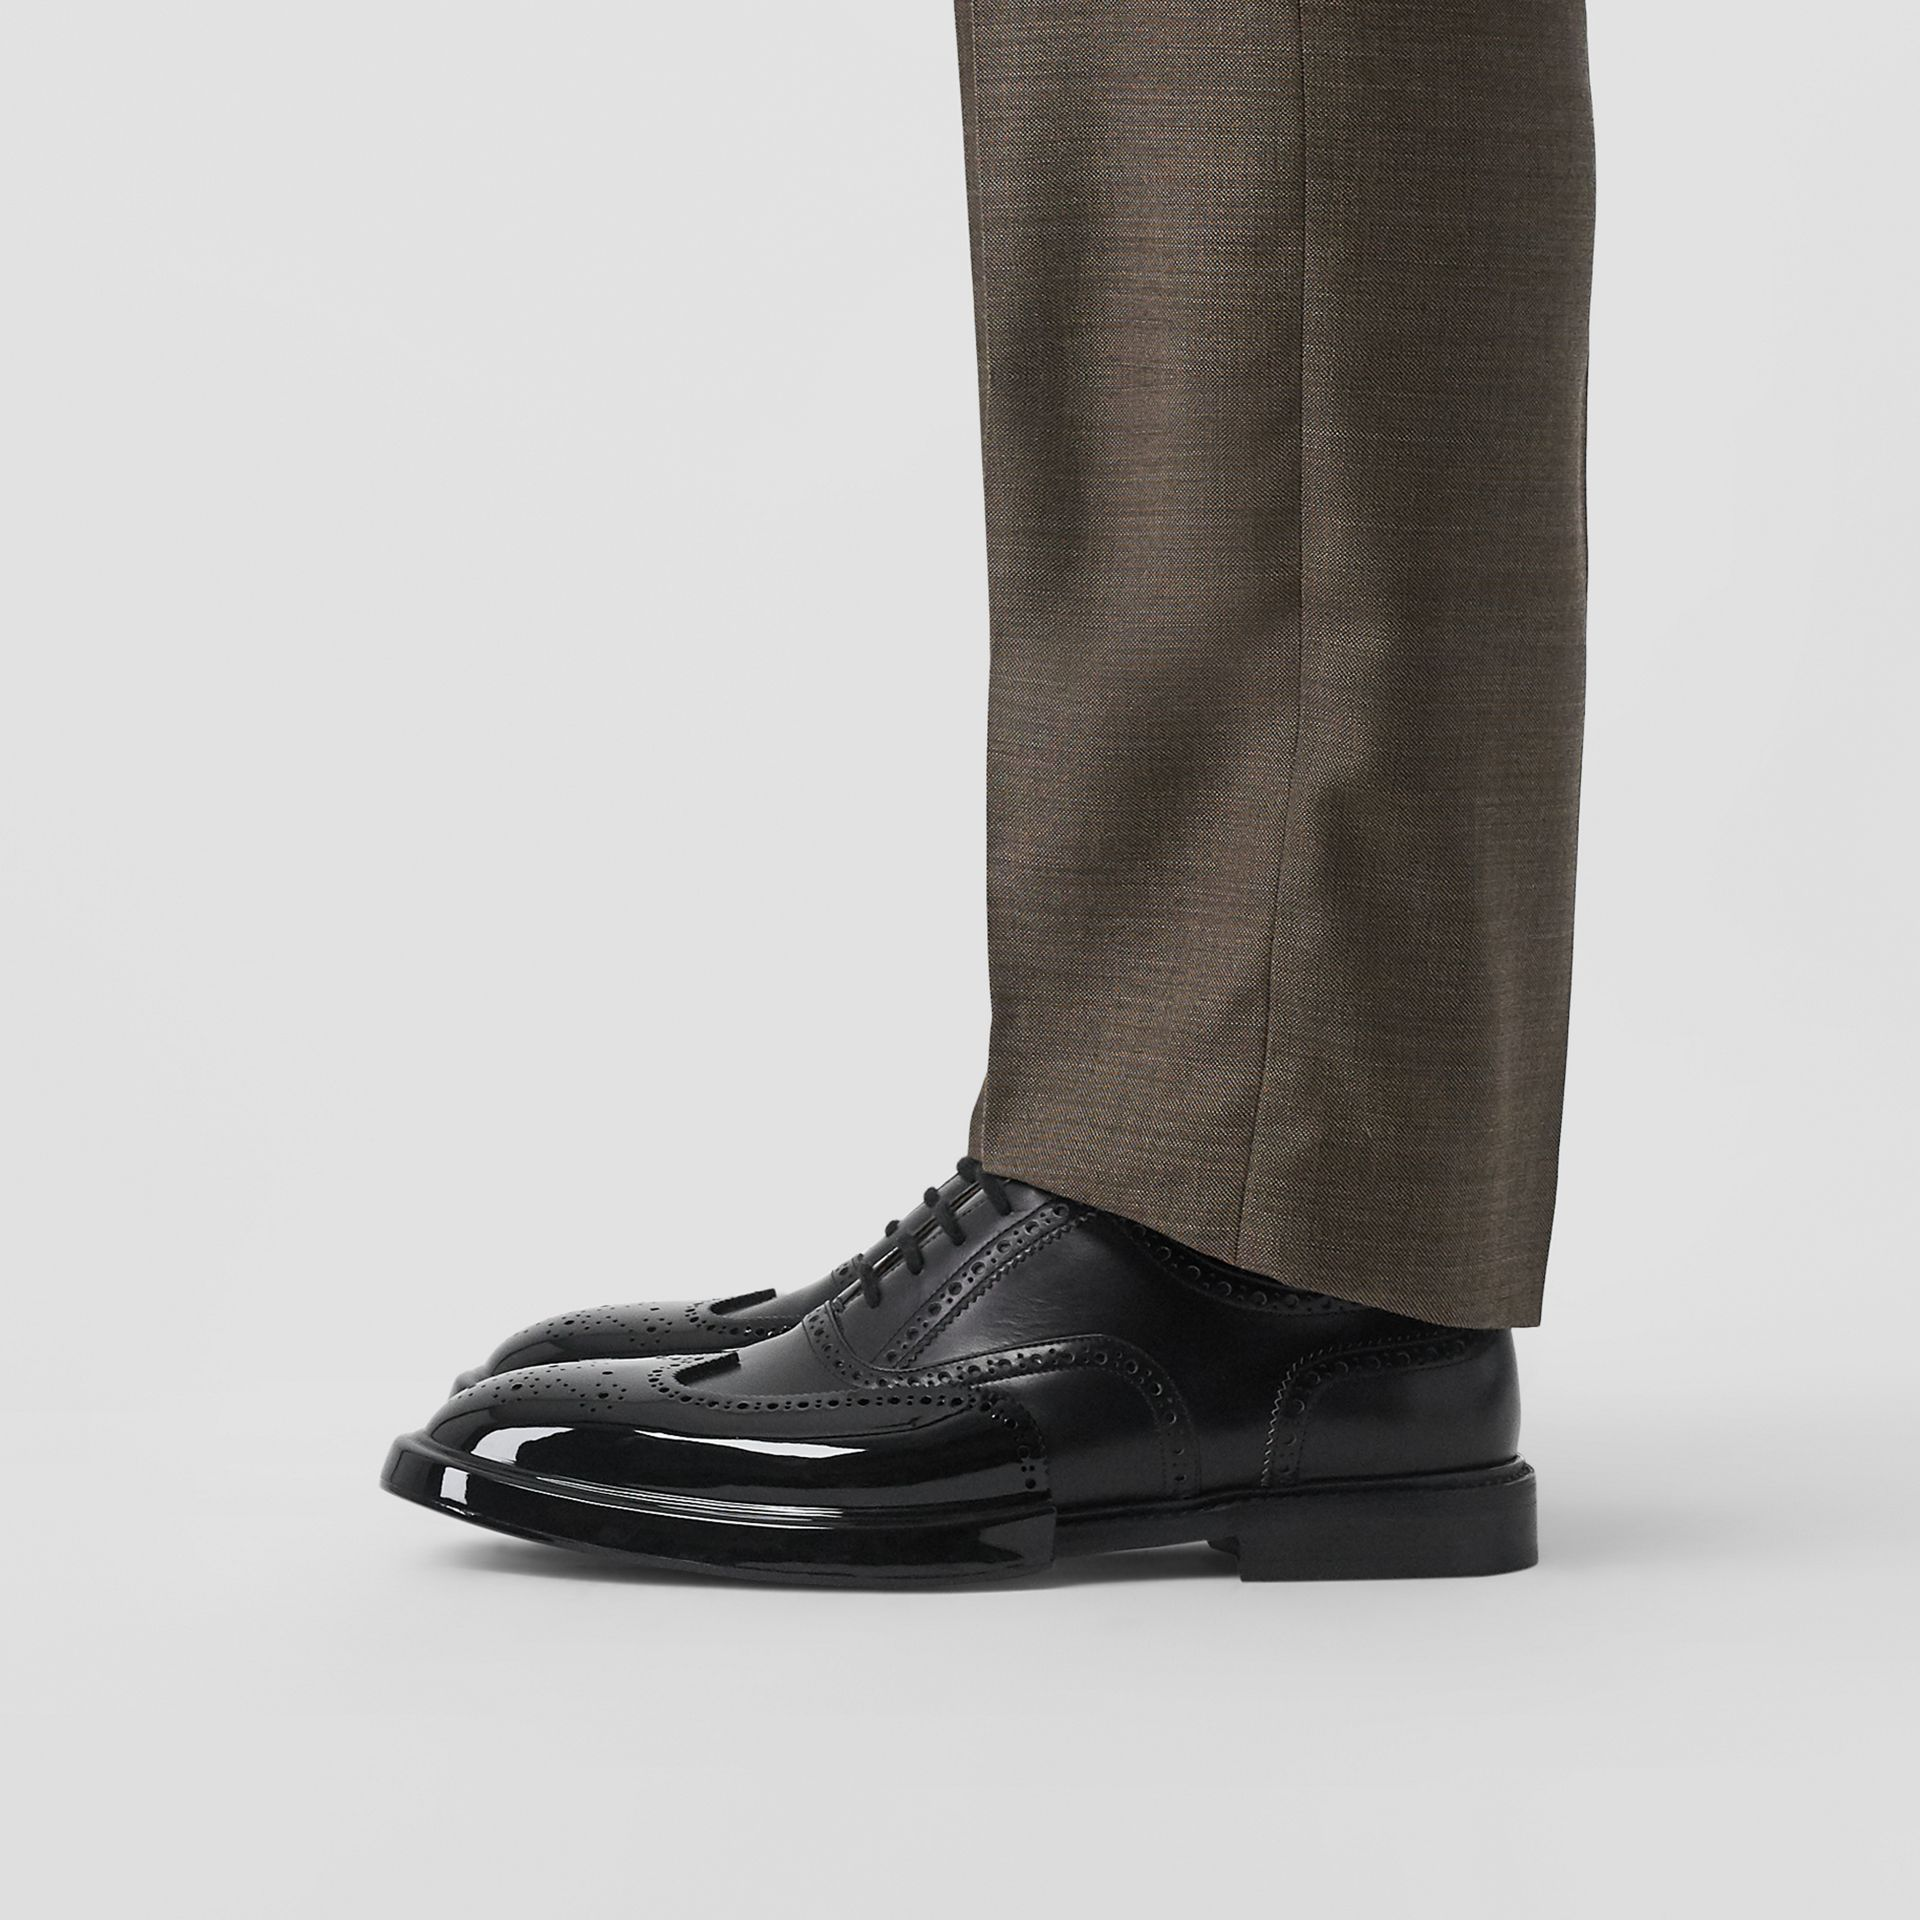 Toe Cap Detail Leather Oxford Brogues in Black - Men | Burberry United Kingdom - gallery image 2